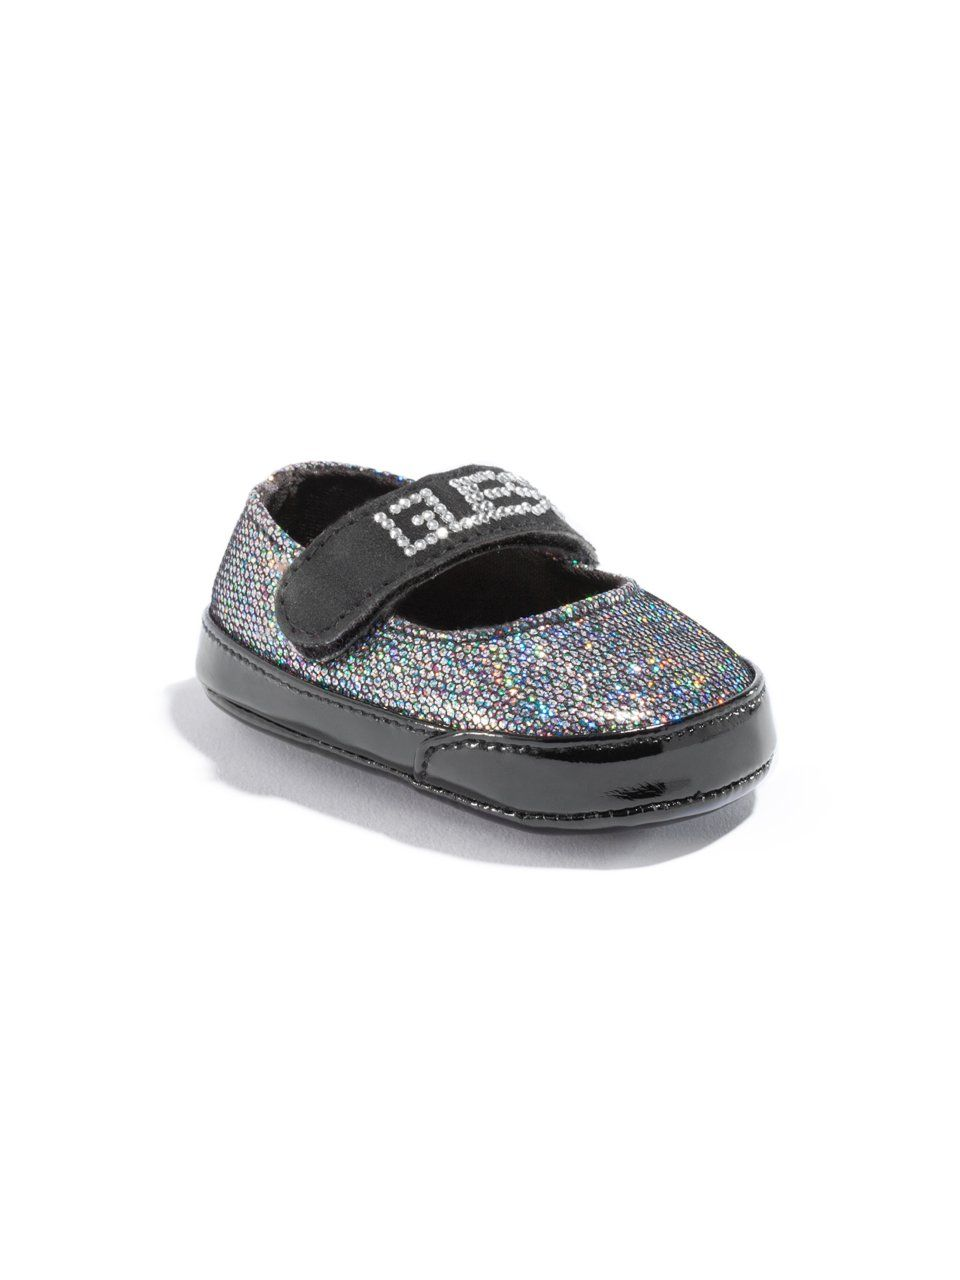 GUESS Kids Girls Baby Jennie-Lee Mary Janes – Black Multi, BLACK (0)